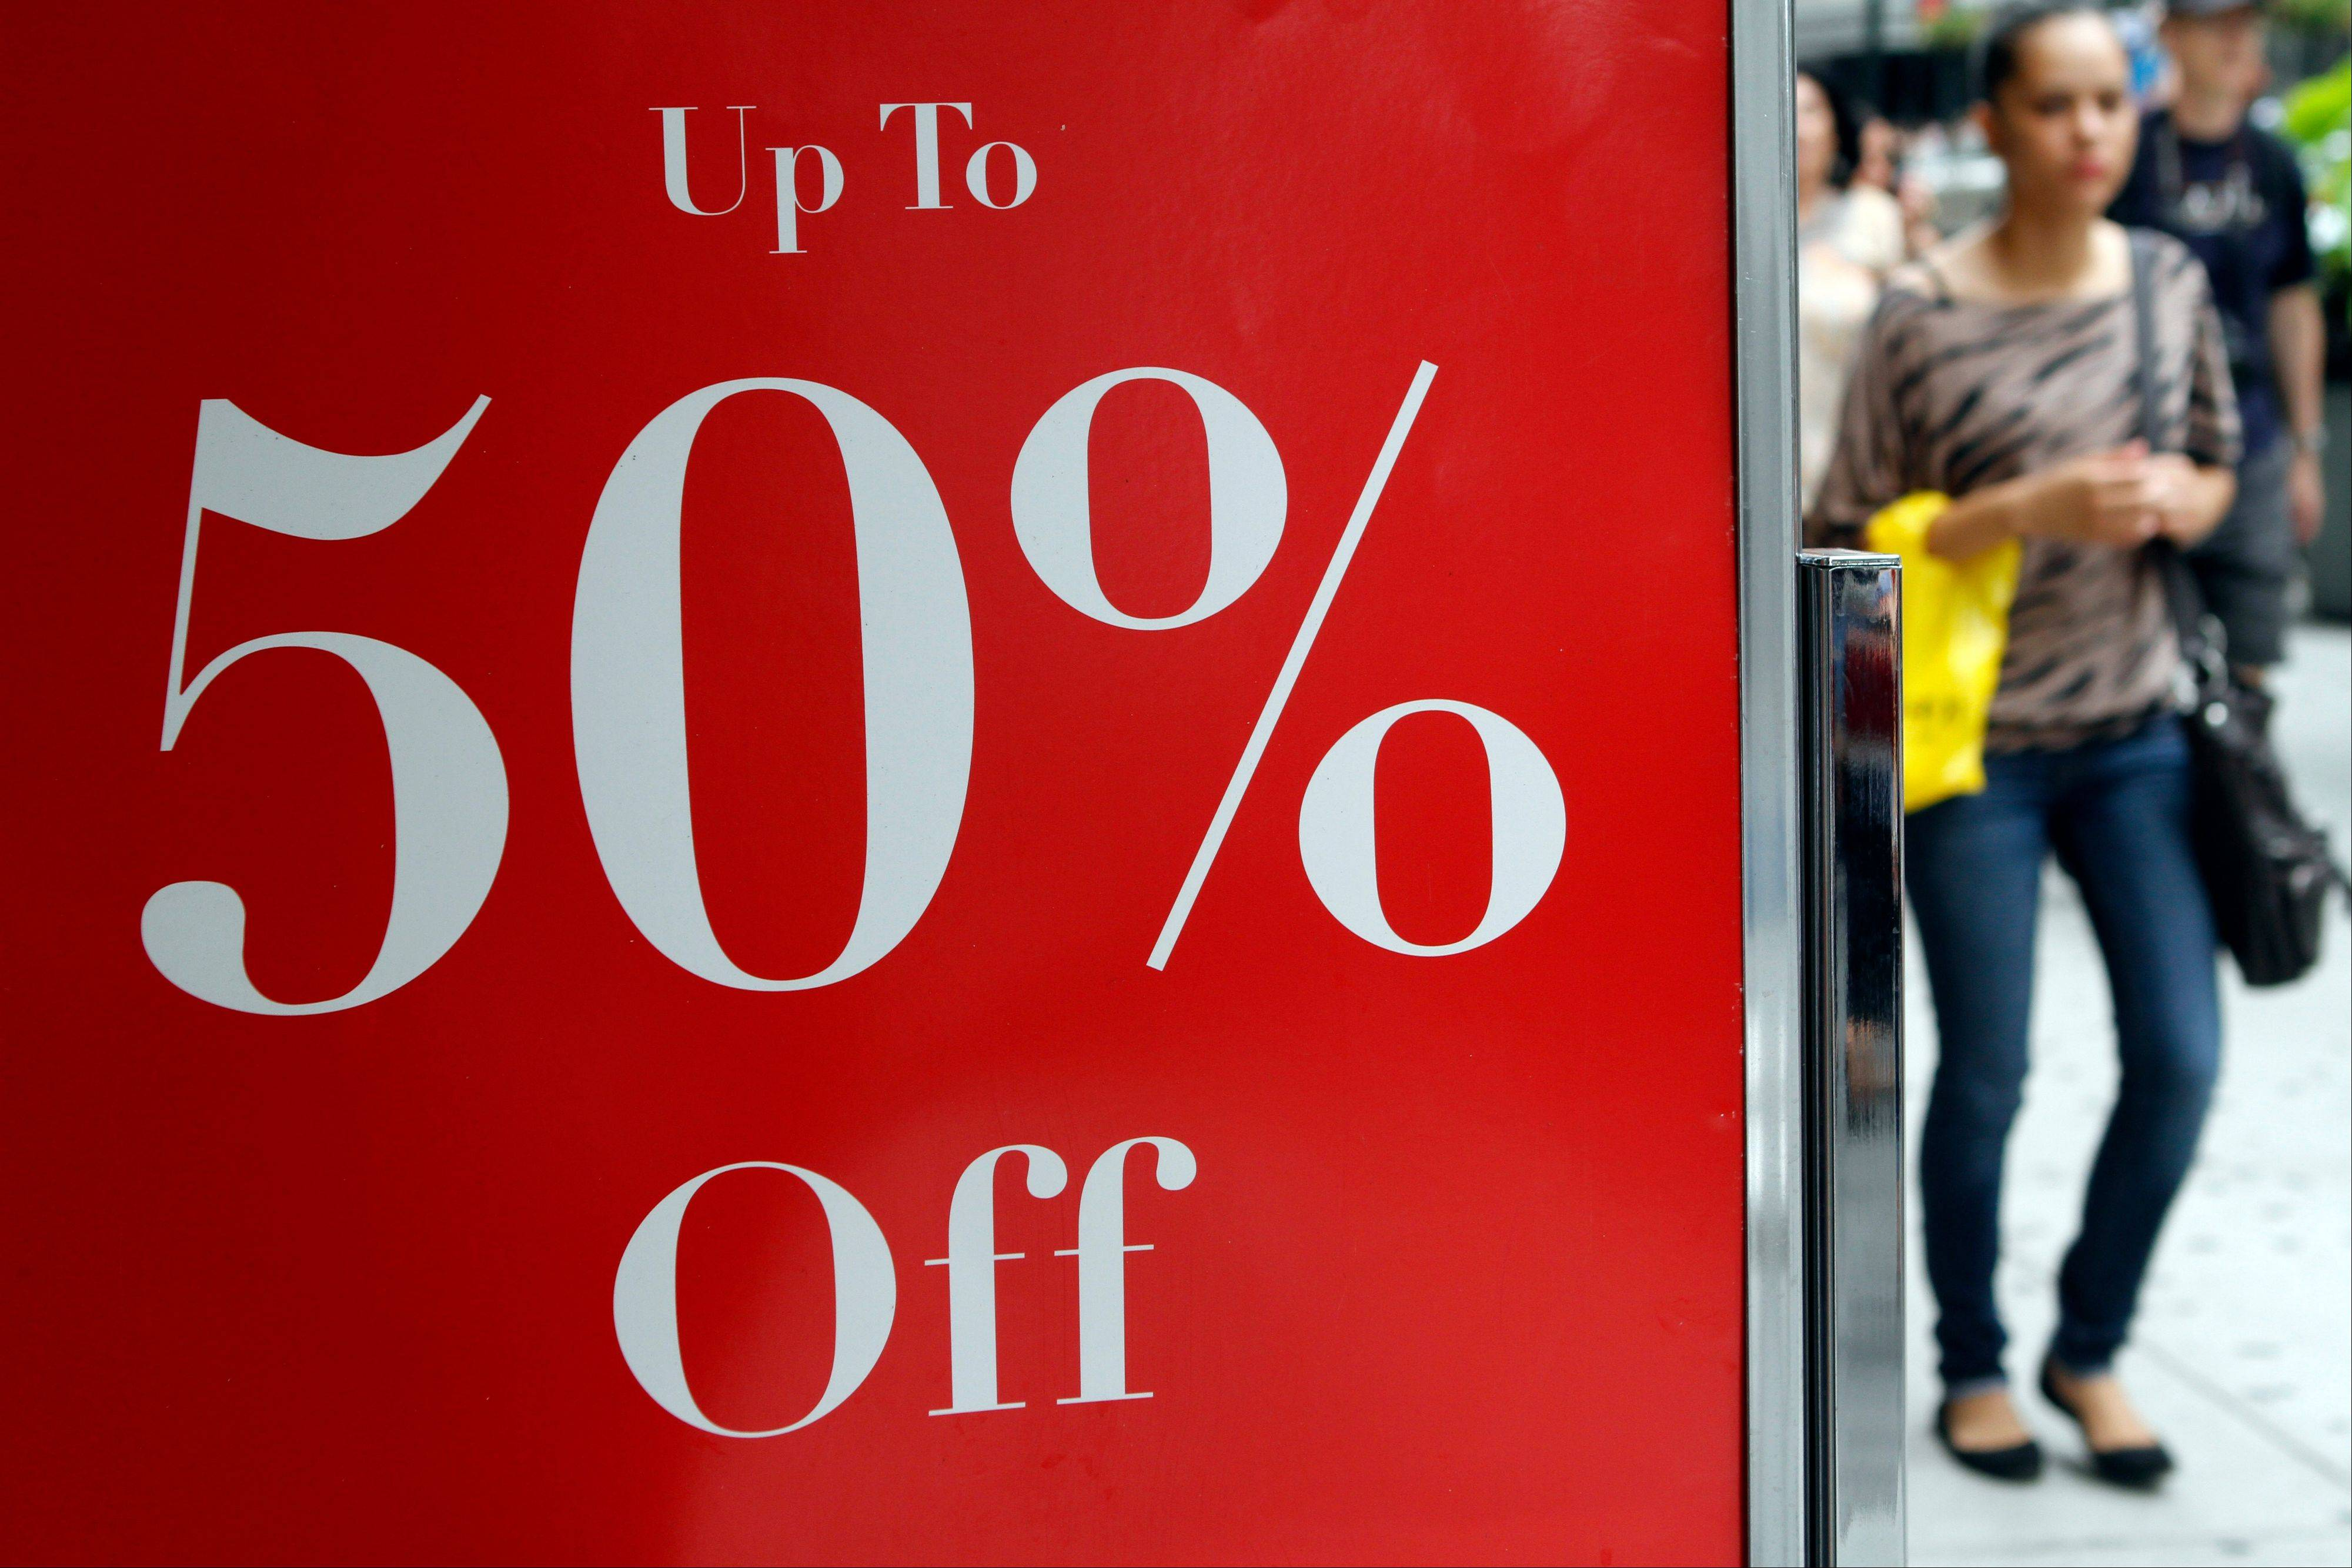 U.S. retail sales rose in July by the largest amount in five months, buoyed by more spending on autos, furniture and clothing. Retail sales rose 0.8 percent in July from June, the Commerce Department reported Tuesday, Aug. 14, 2012. The increased followed three months of declines, including a 0.7 percent drop in sales in June.